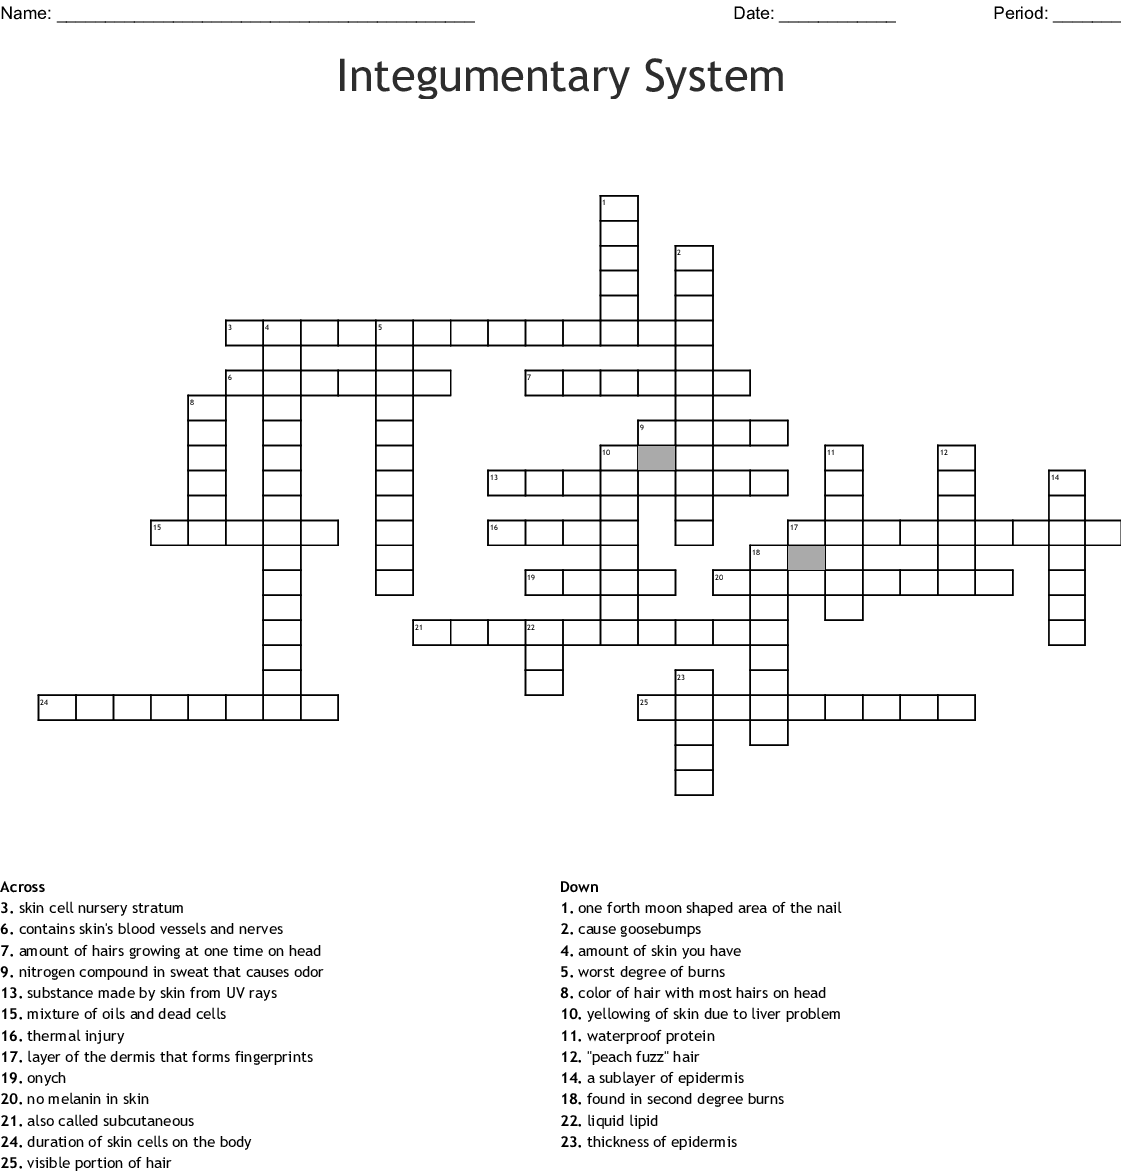 Integumentary System Crossword - WordMint